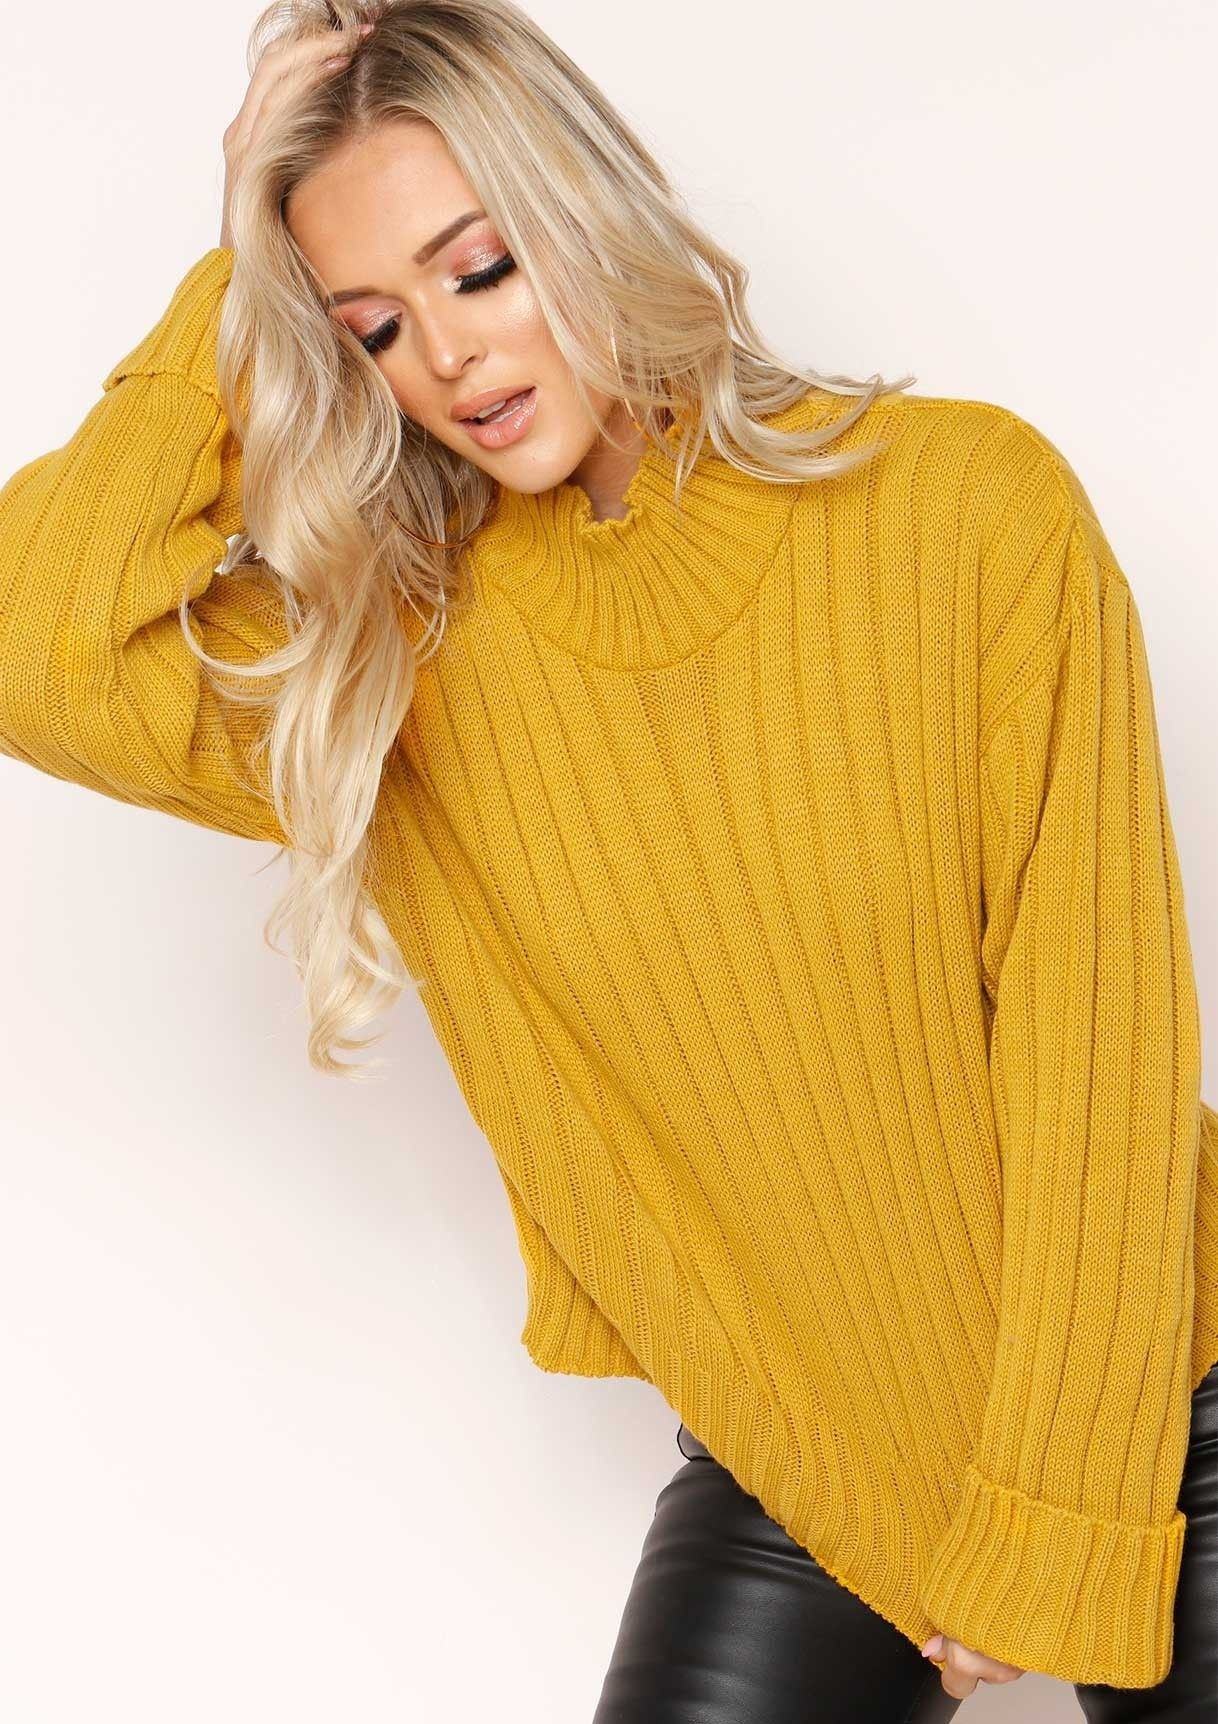 31988d0c0 Missyempire - Arlene Mustard Knit High Neck Jumper